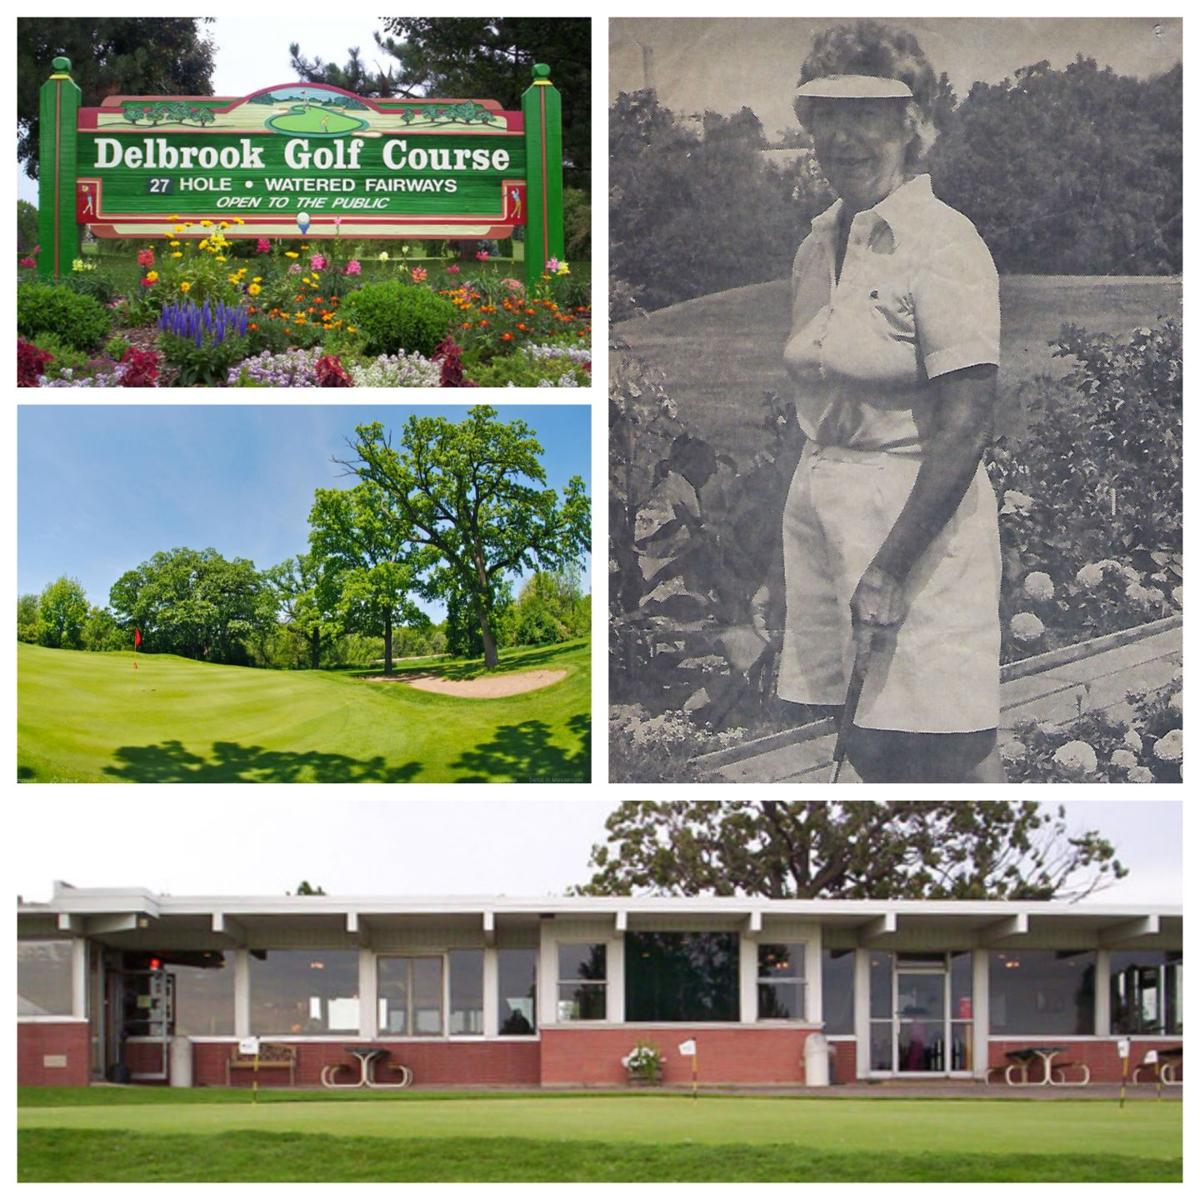 Delbrook Golf Course | Collage